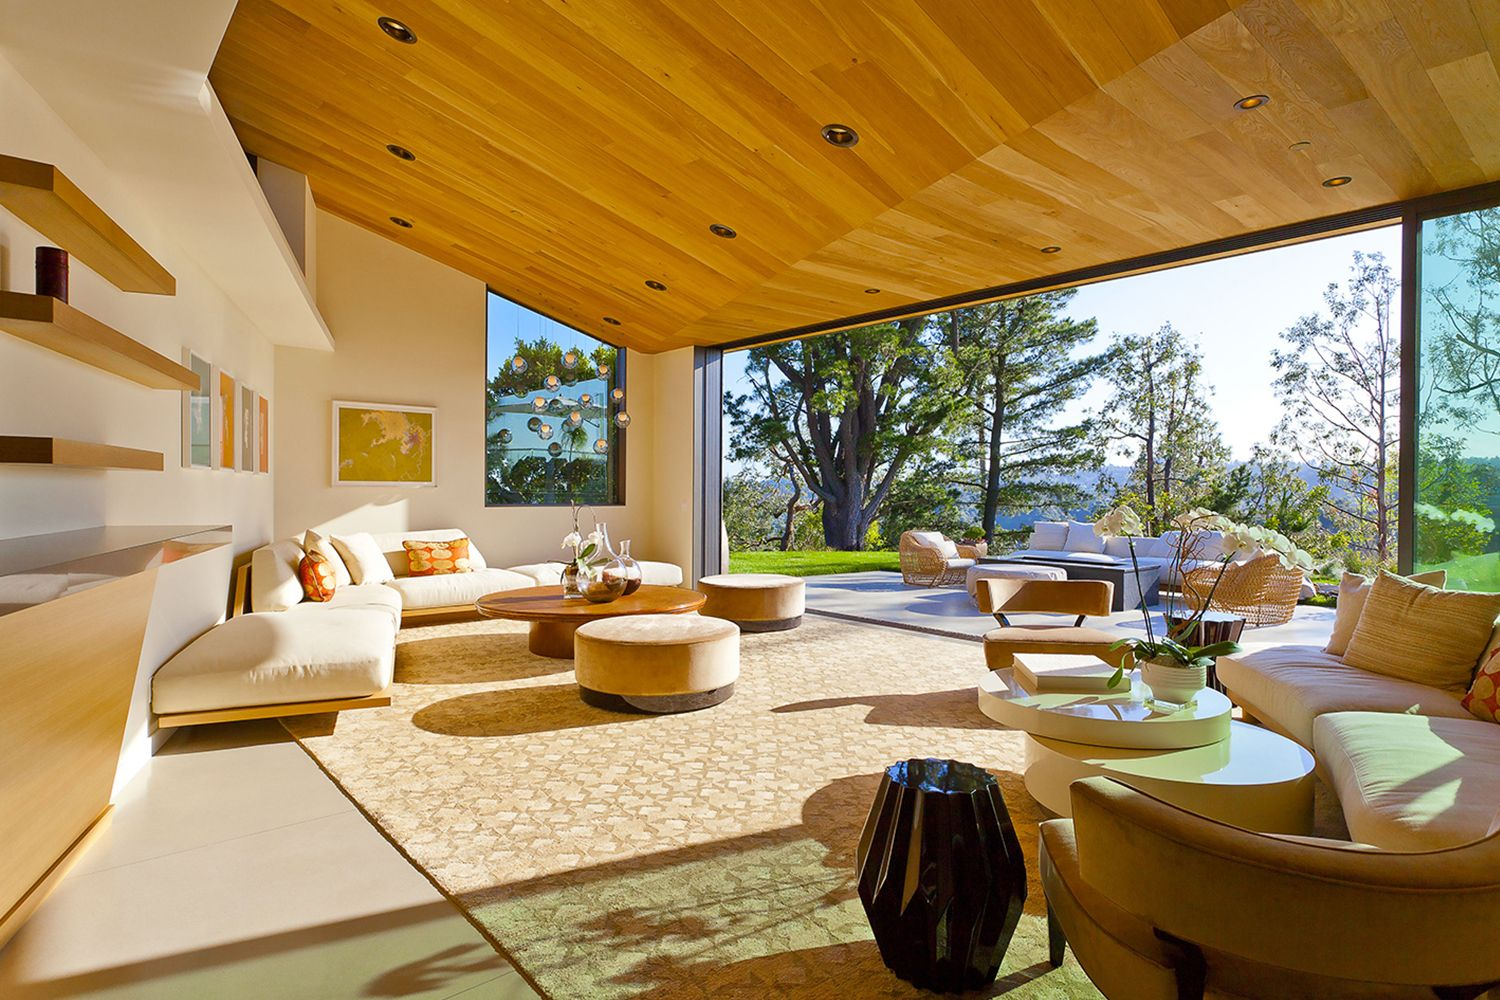 4 Stunning Living Rooms For Every Type of Style